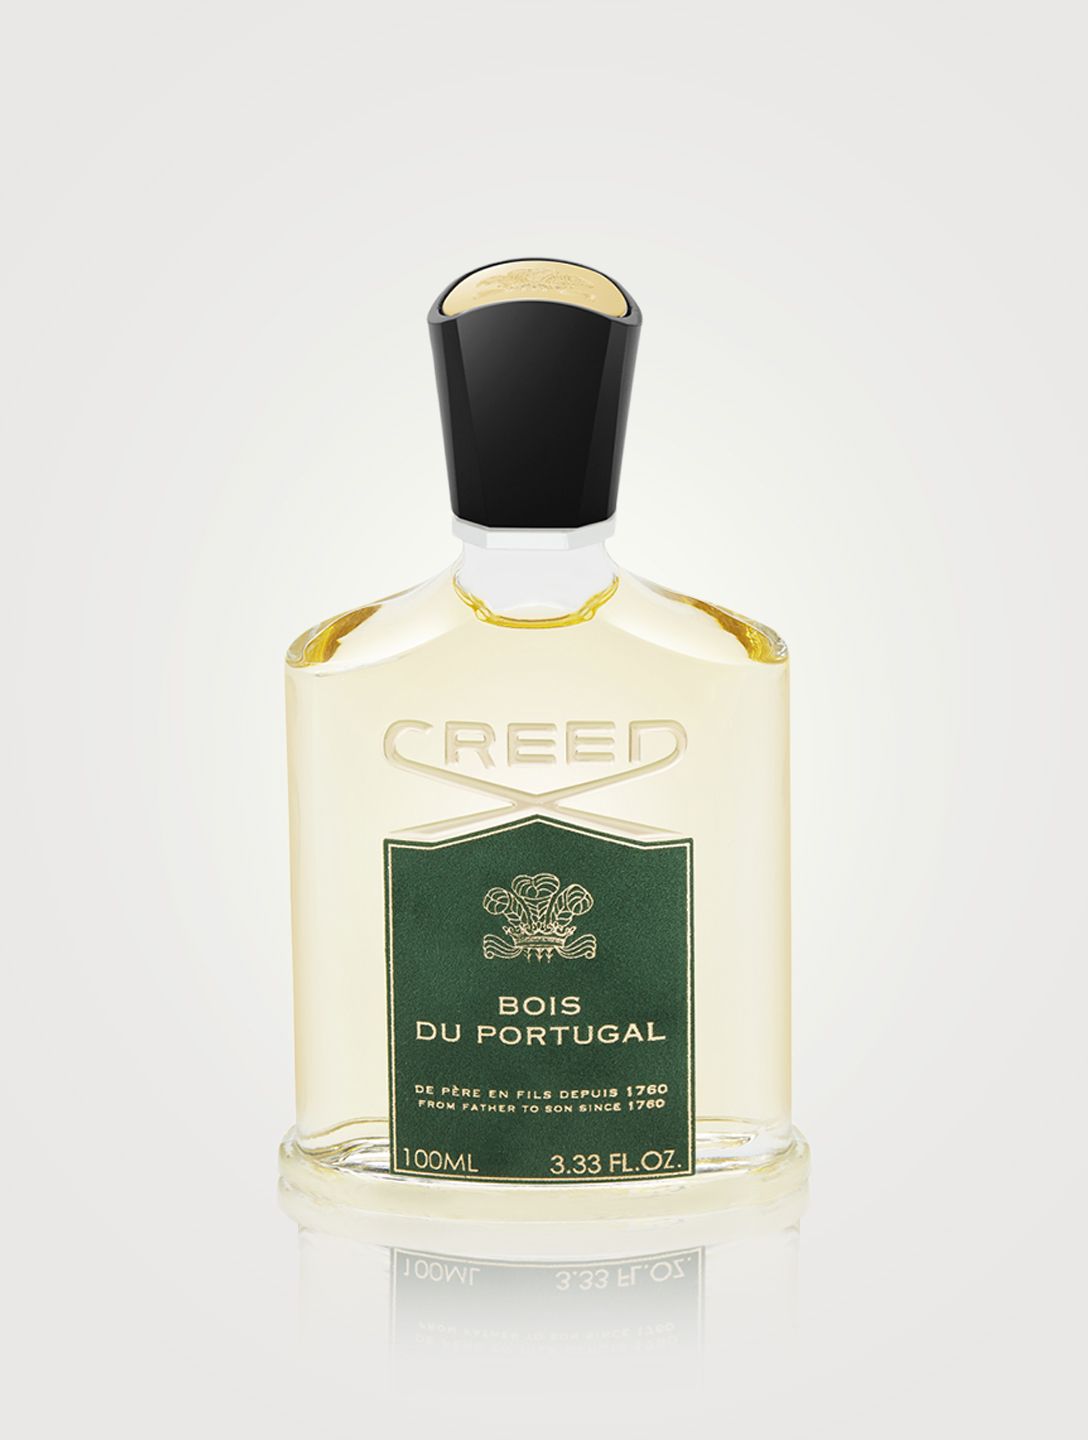 CREED Bois du Portugal Eau de Parfum Beauty